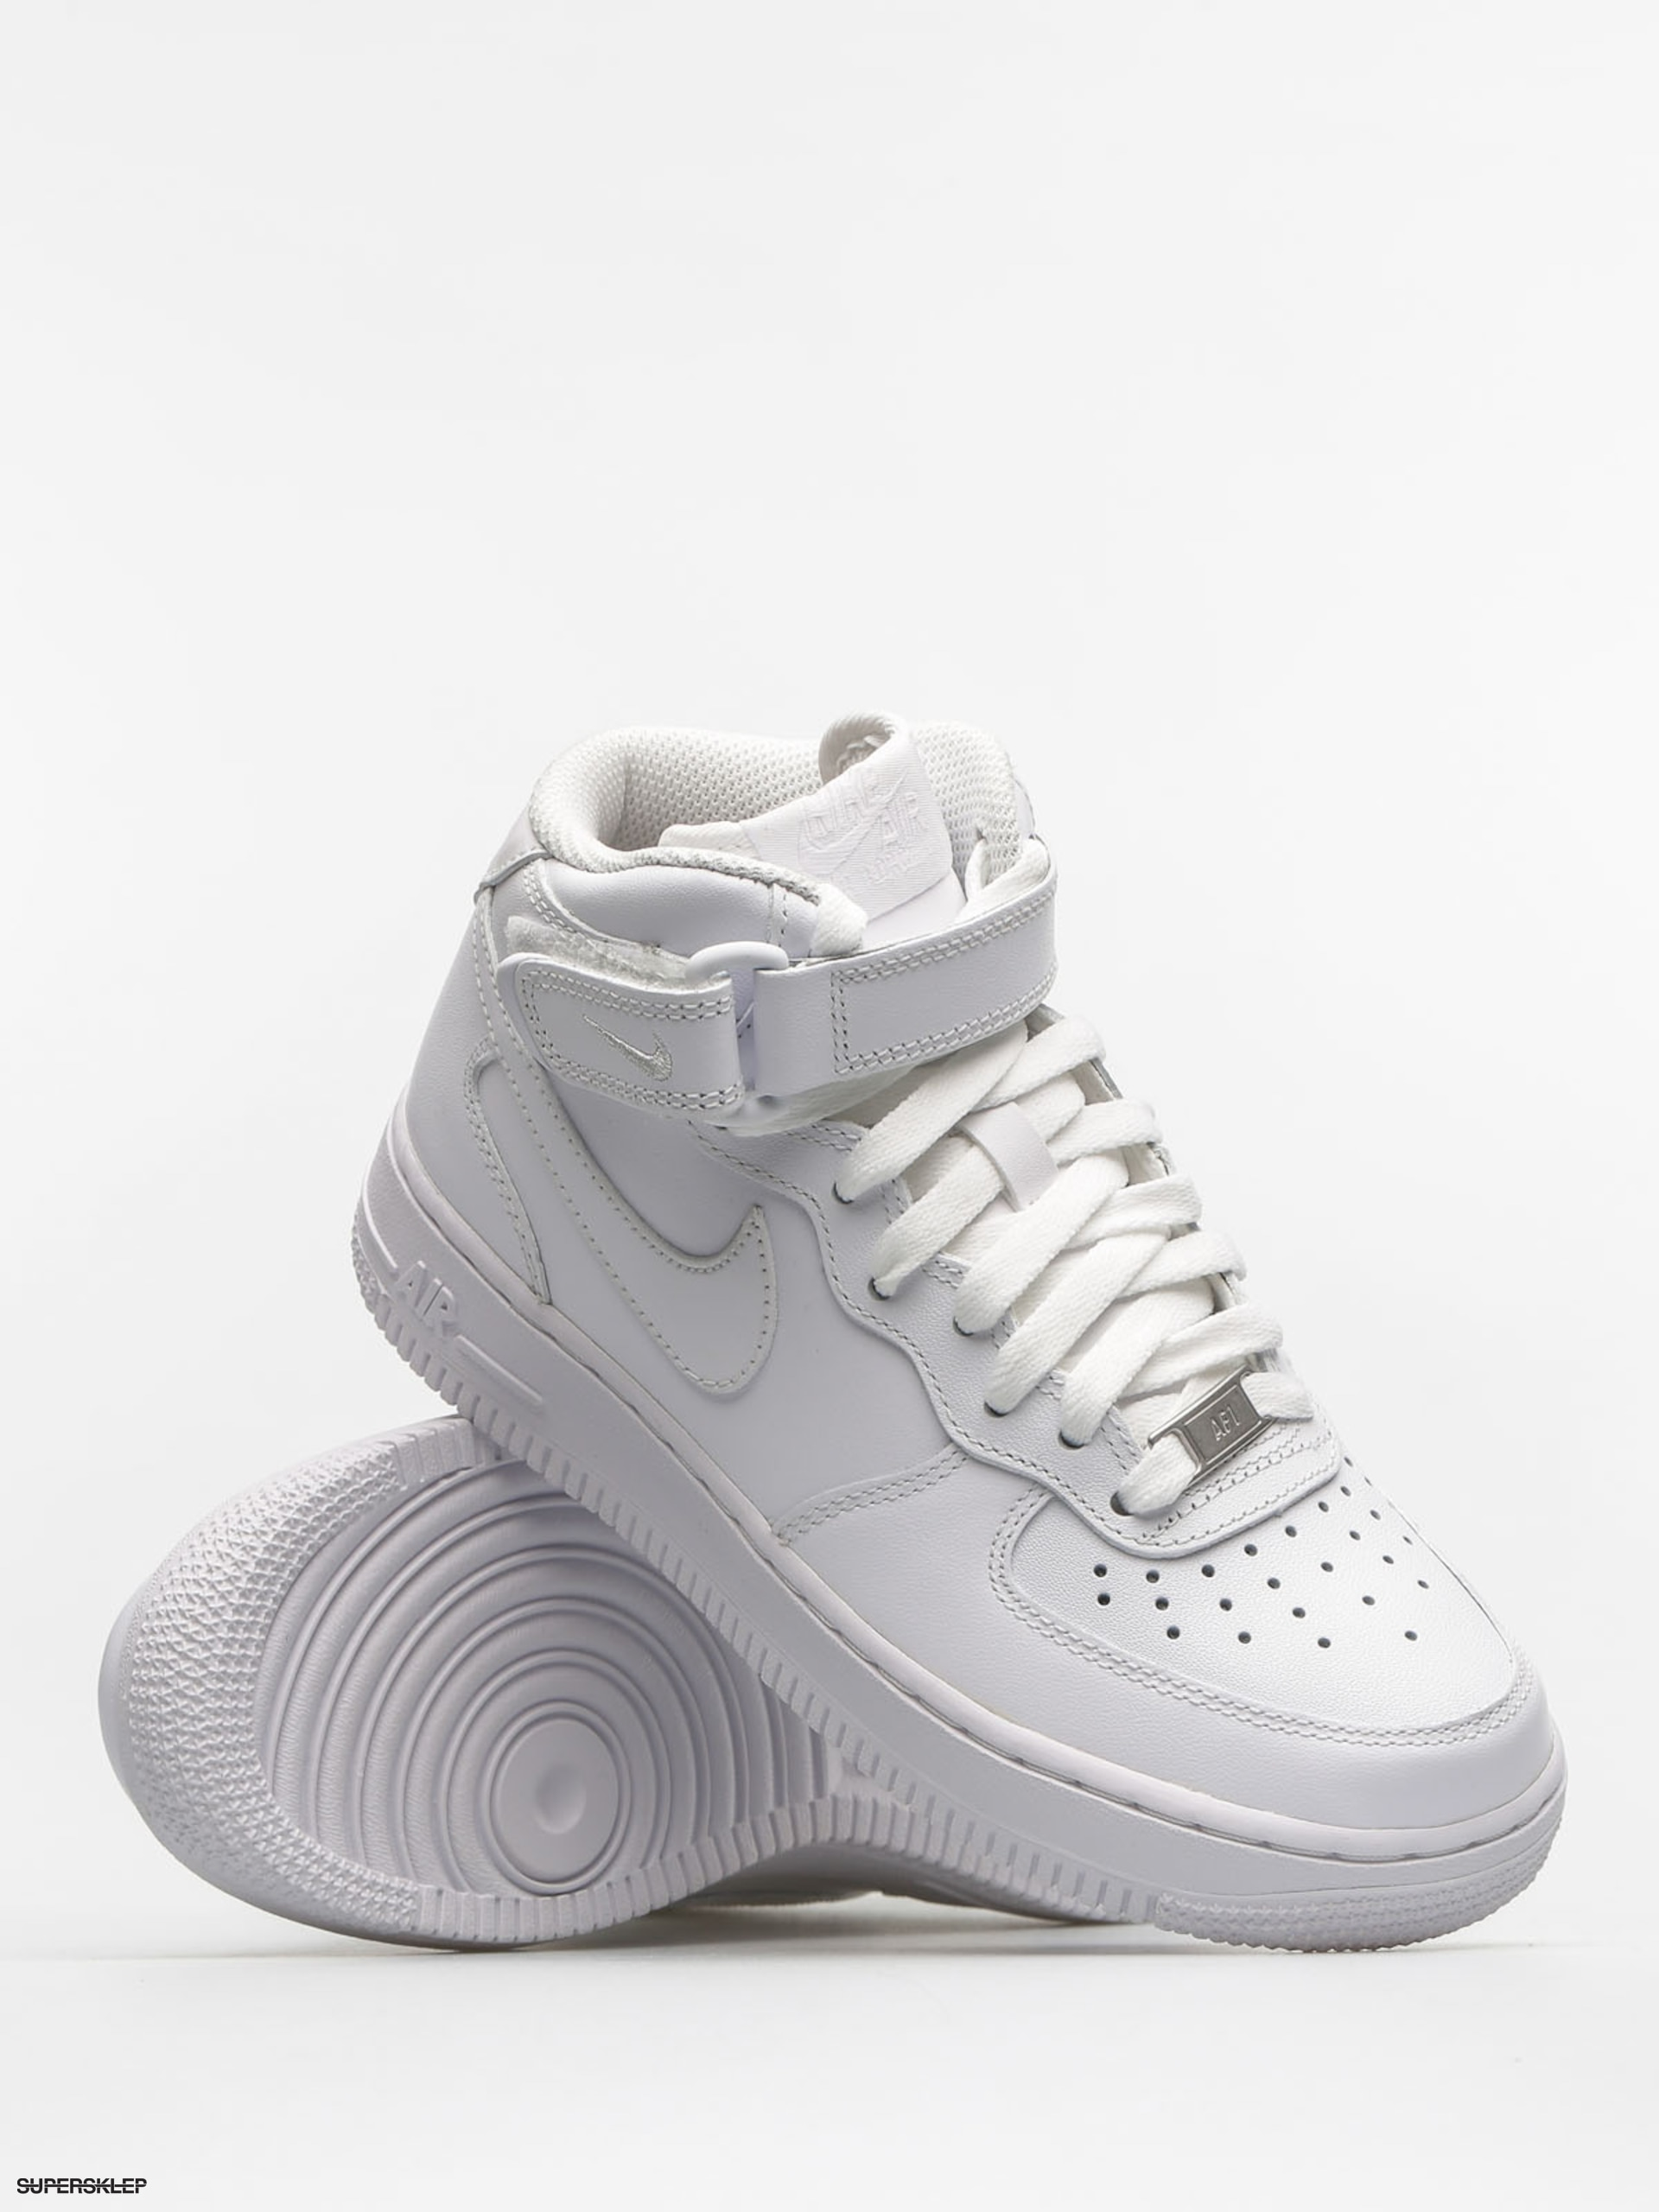 b354b62dc2 Topánky Nike Air Max Force 1 Mid 07 Le Wmn (white white)